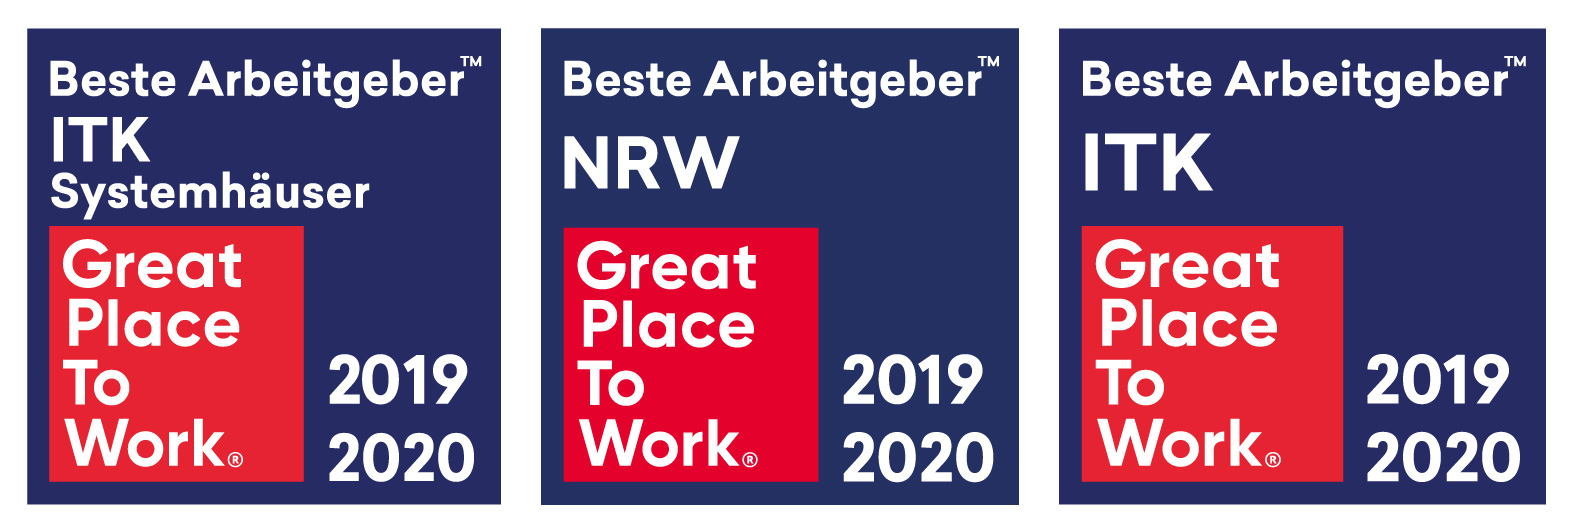 Great Place to Work Beste Arbeitgeber ITK NRW Systemhaus unique projects EDV Service Anbieter | IT | Duisburg